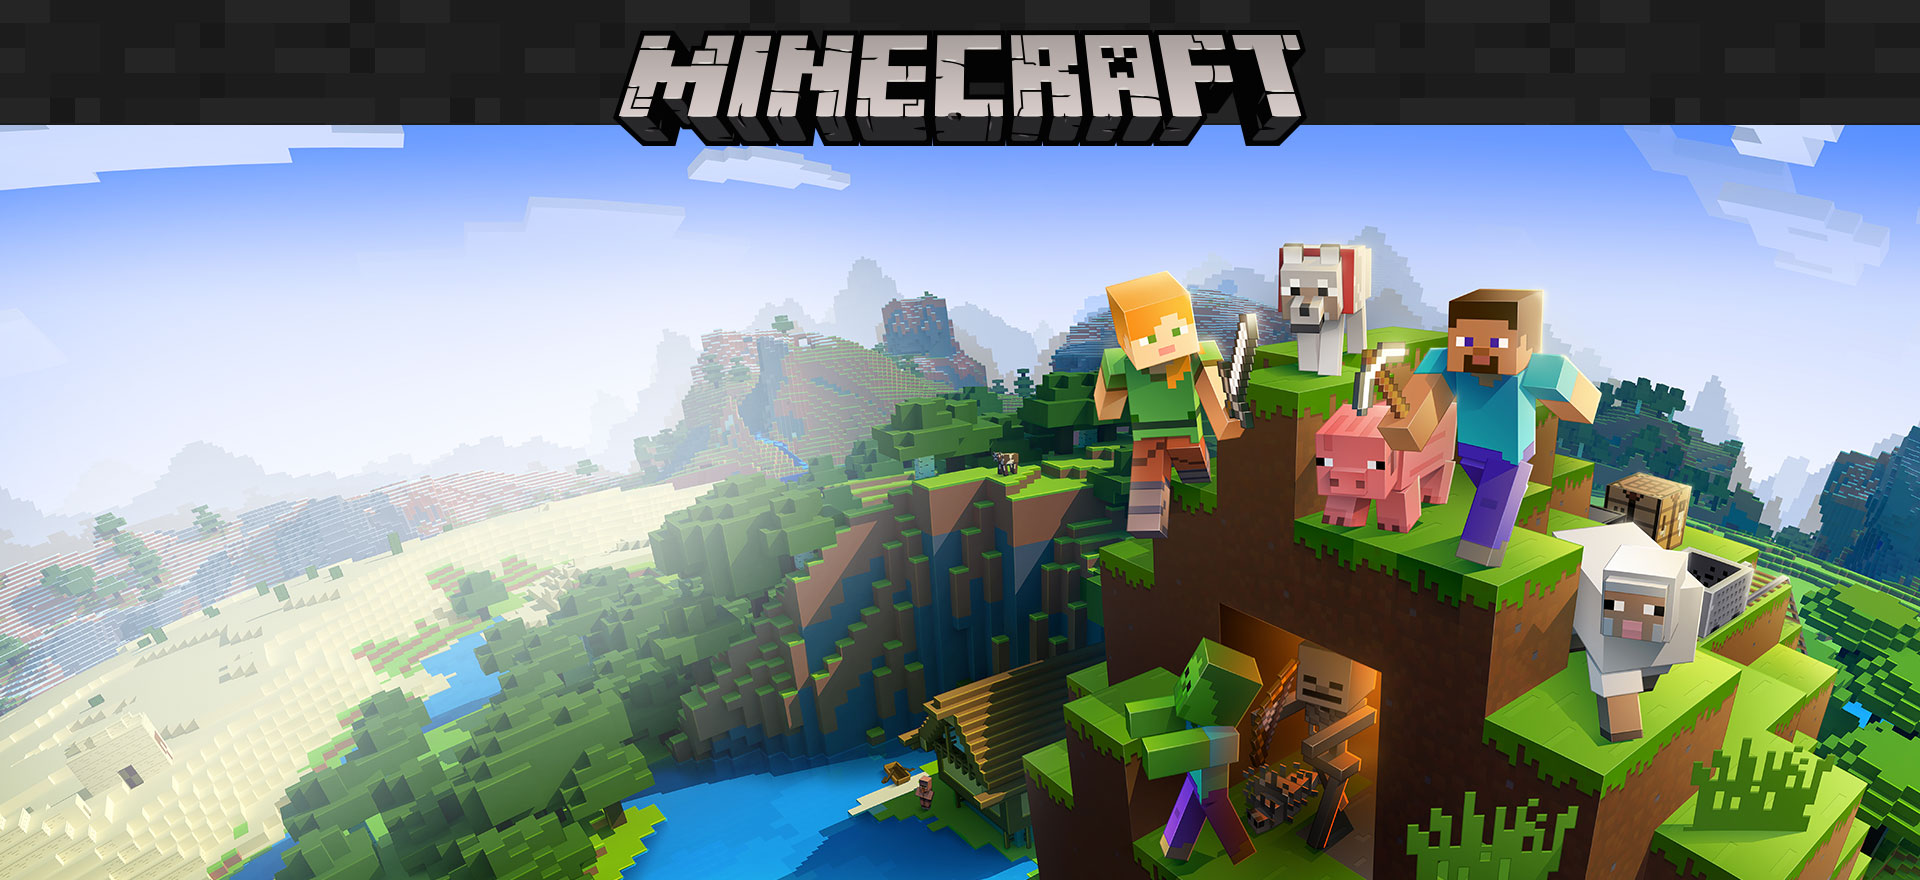 Minecraft logo with in game characters on block environment background